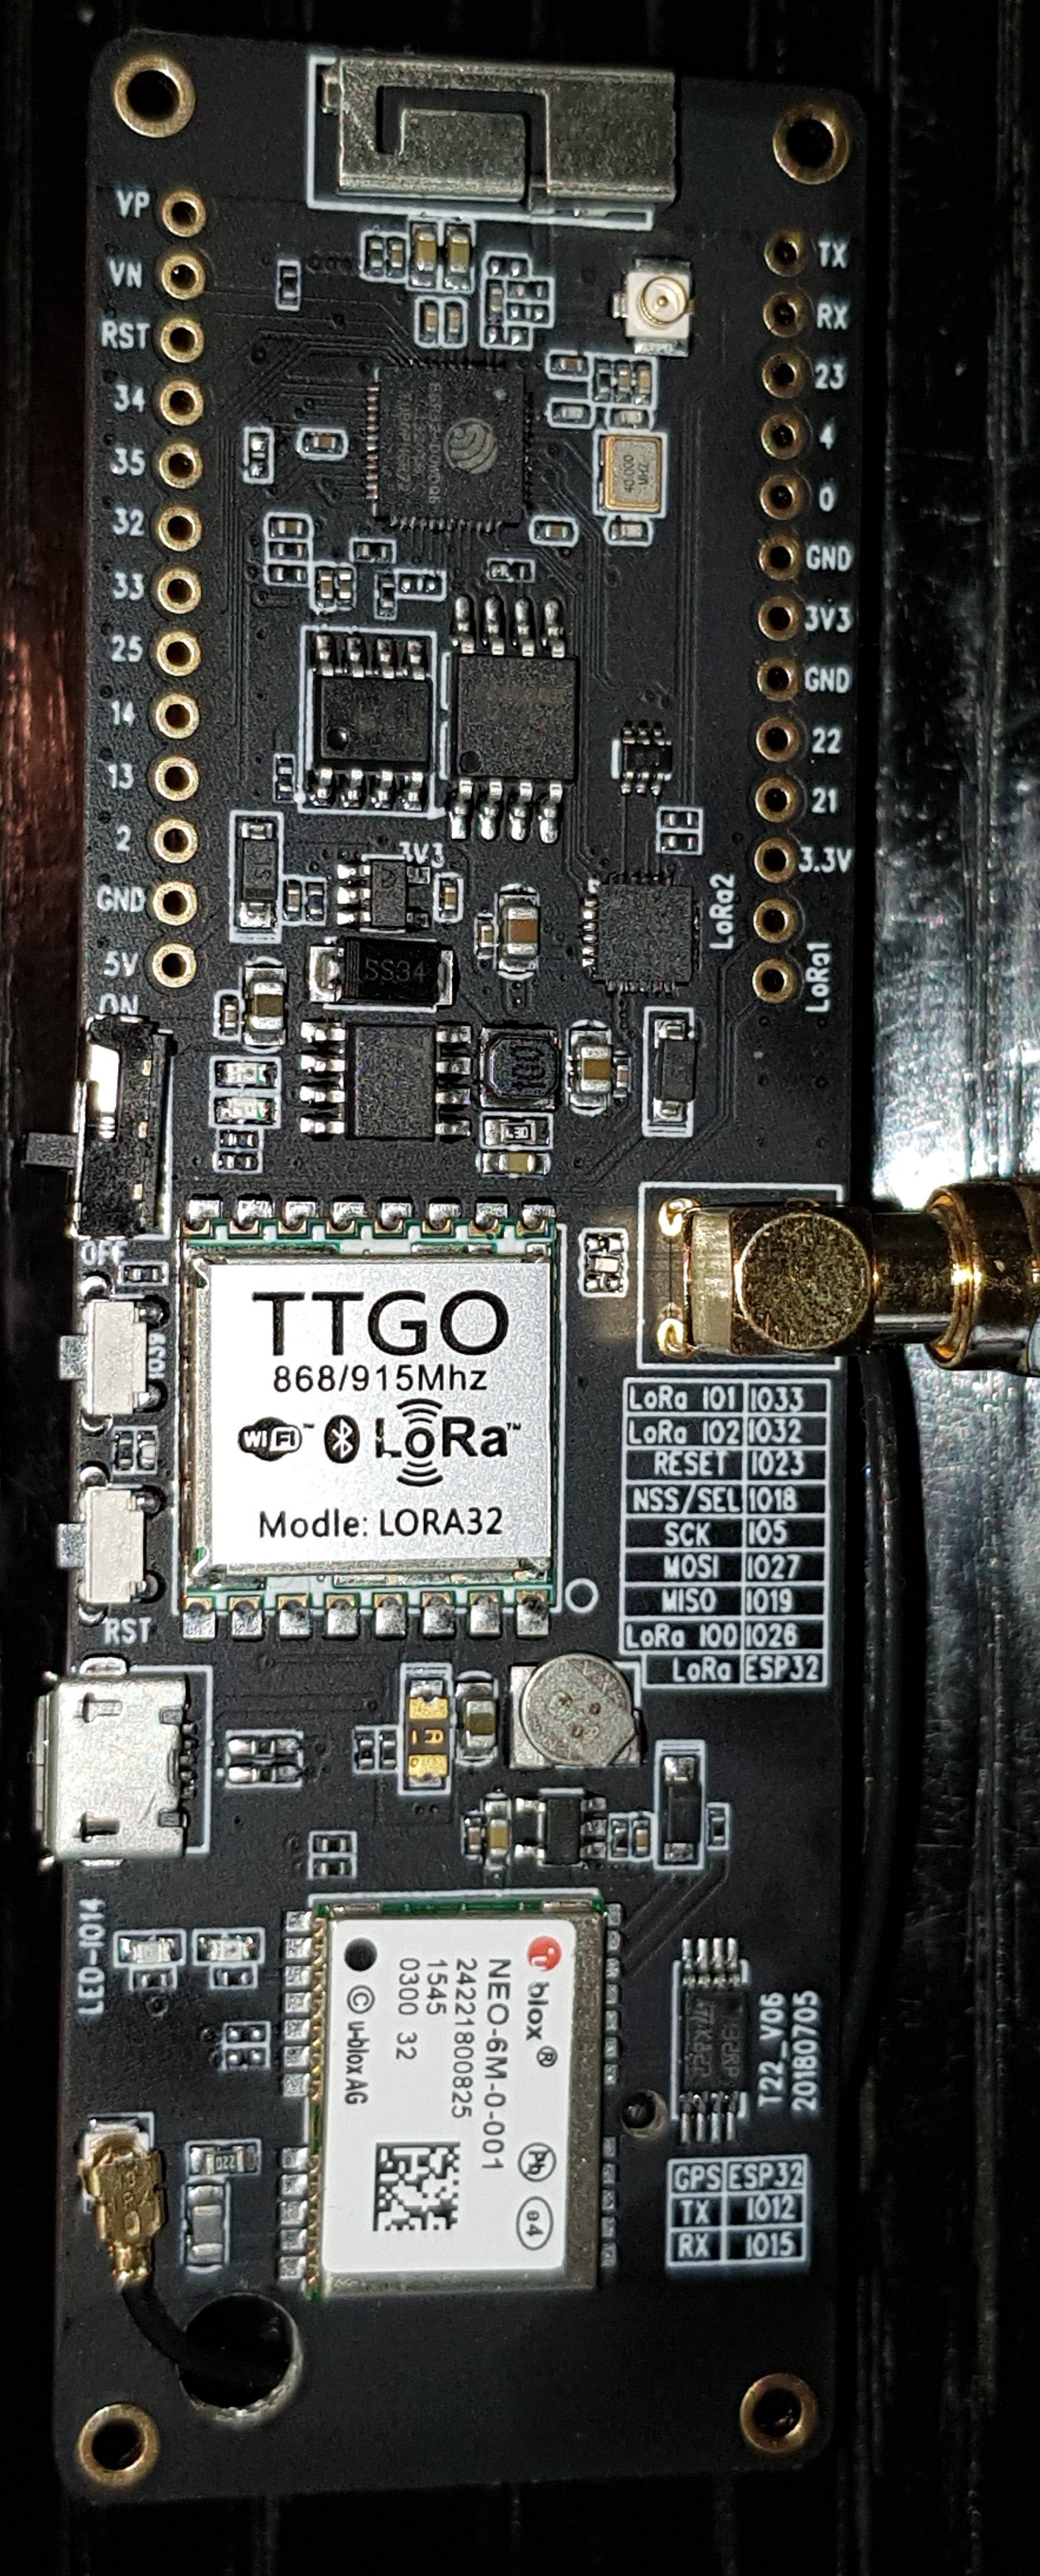 Picture of layout does not match my board  · Issue #2 · LilyGO/TTGO